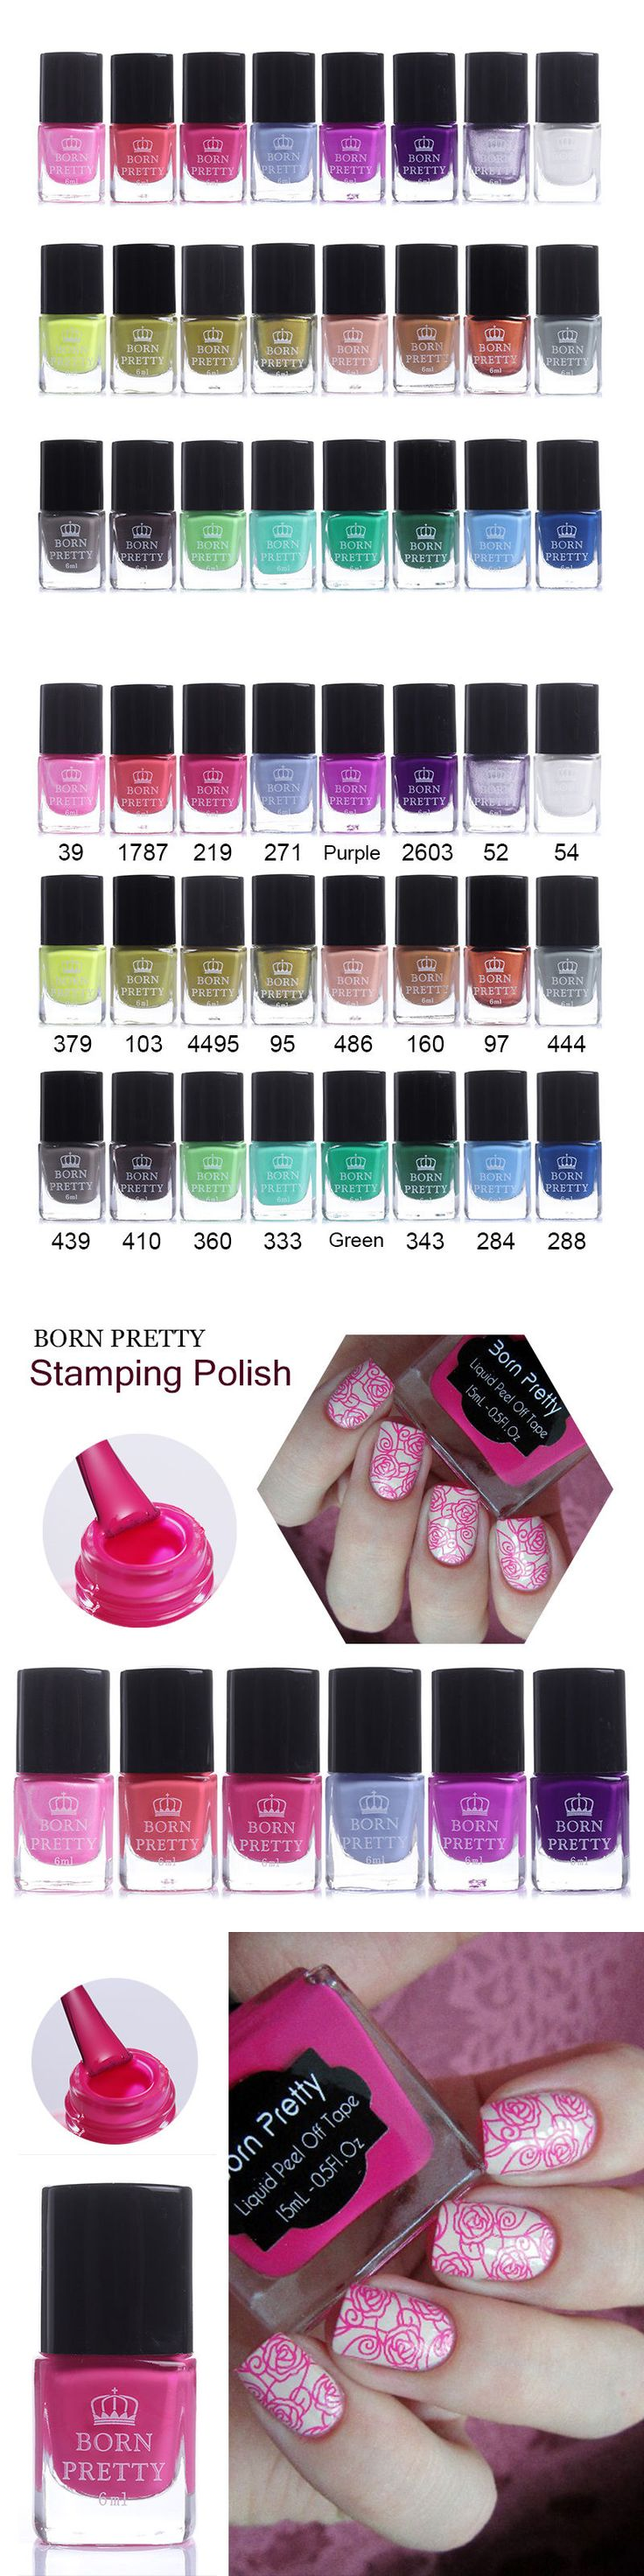 Nails: Stamping Nail Polish Nail Art Stamp Plate Printing Polish 24 Colors Born Pretty -> BUY IT NOW ONLY: $32.39 on eBay!